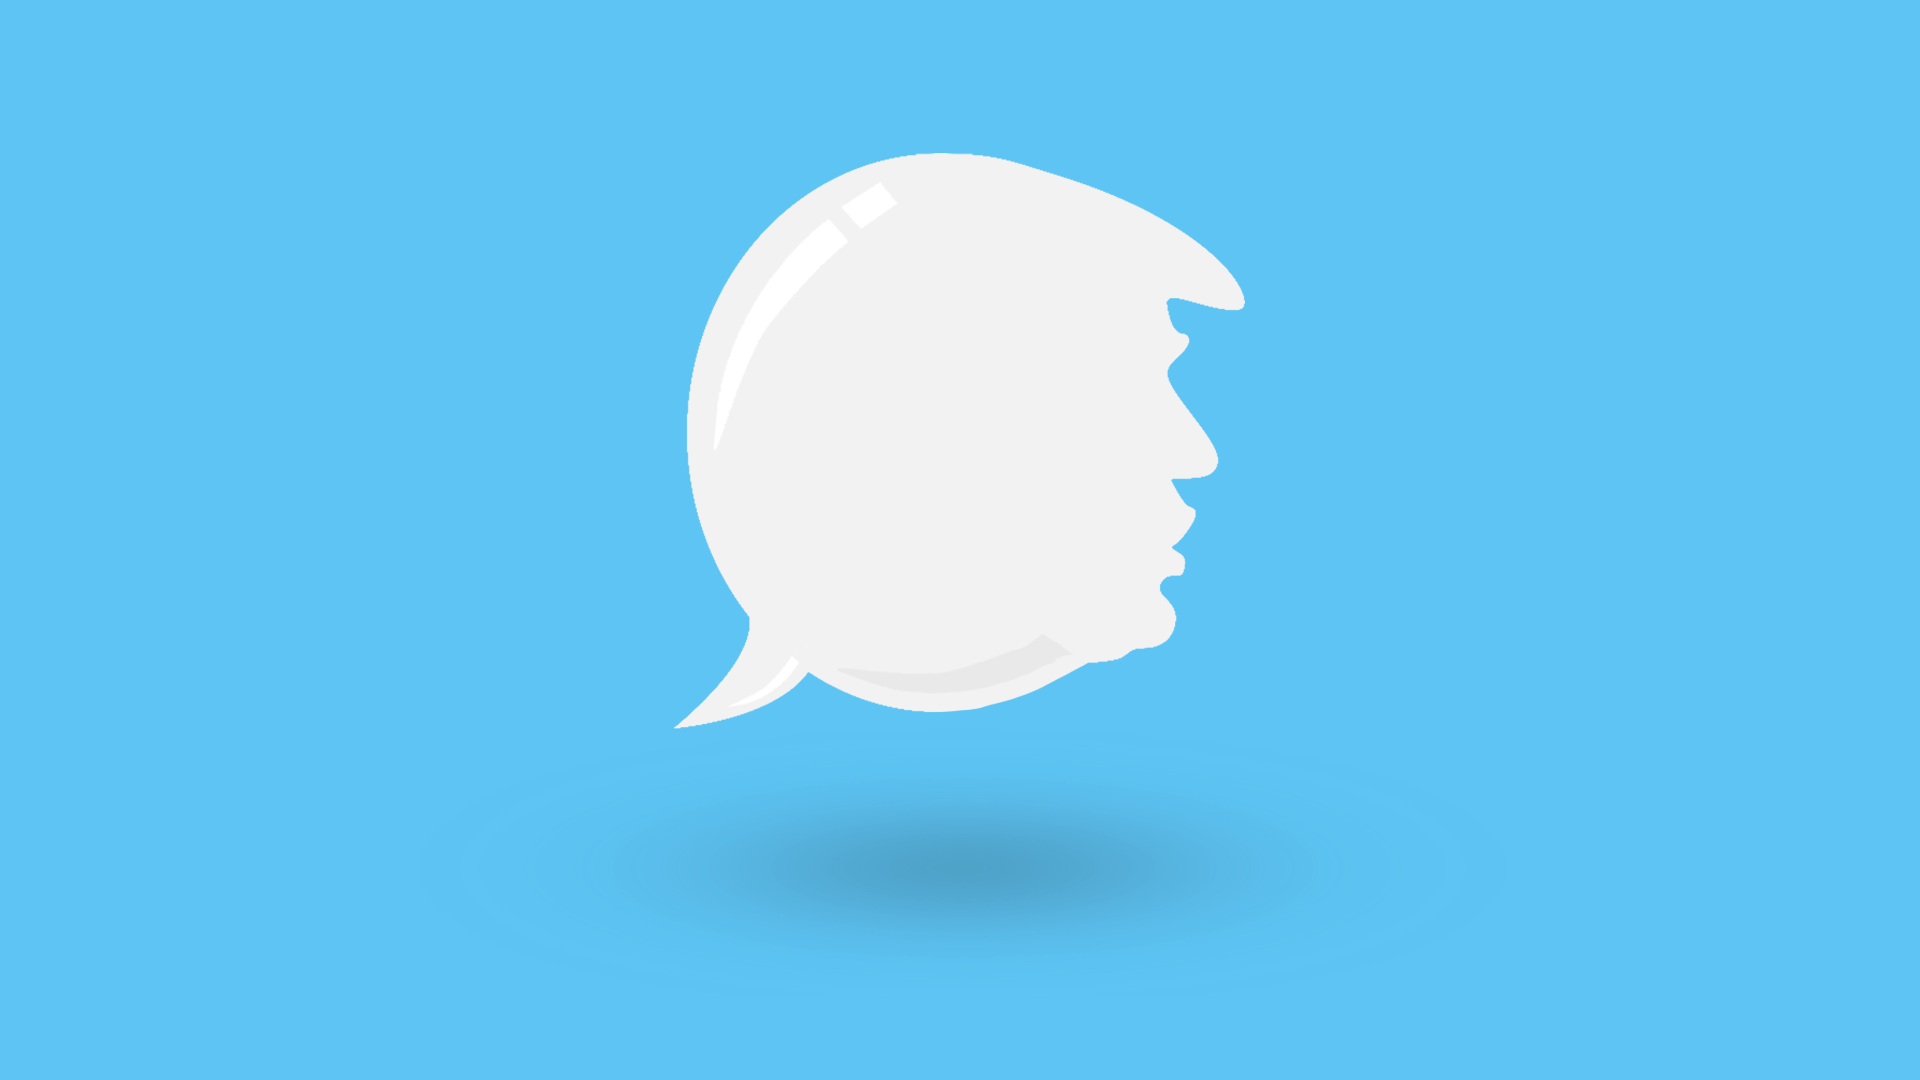 Illustration of a speech bubble in the shape of President Trump's head